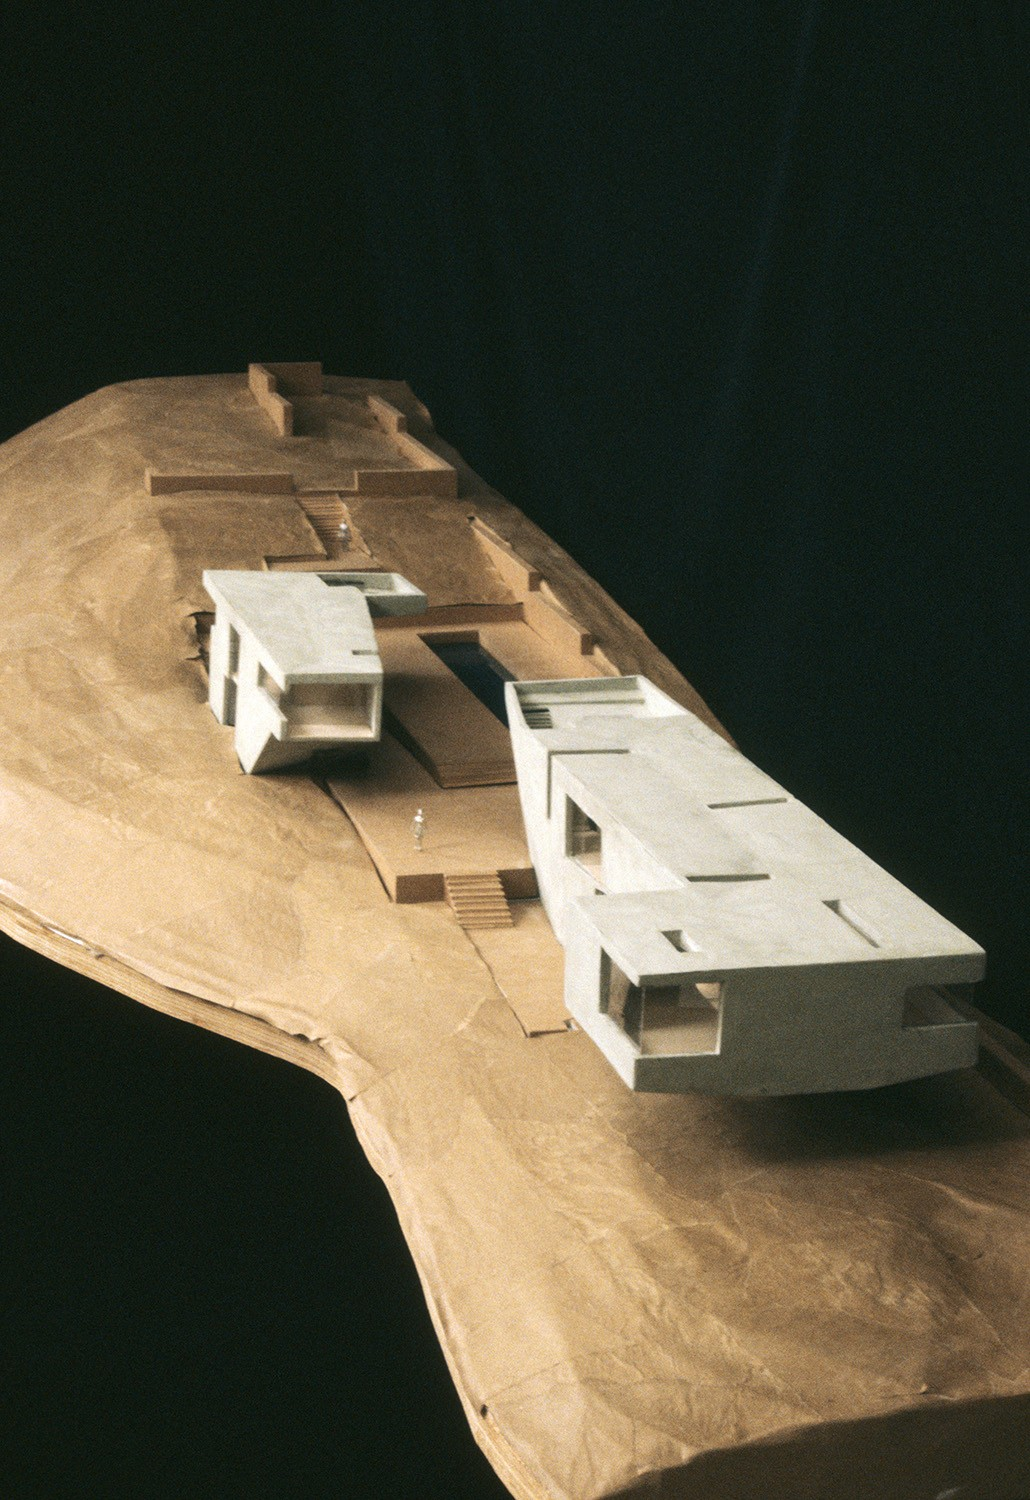 https://s3.us-east-2.amazonaws.com/steven-holl/uploads/projects/project-images/StevenHollArchitects_Oceanic_OceanicRetreatmodel2_WV.jpg